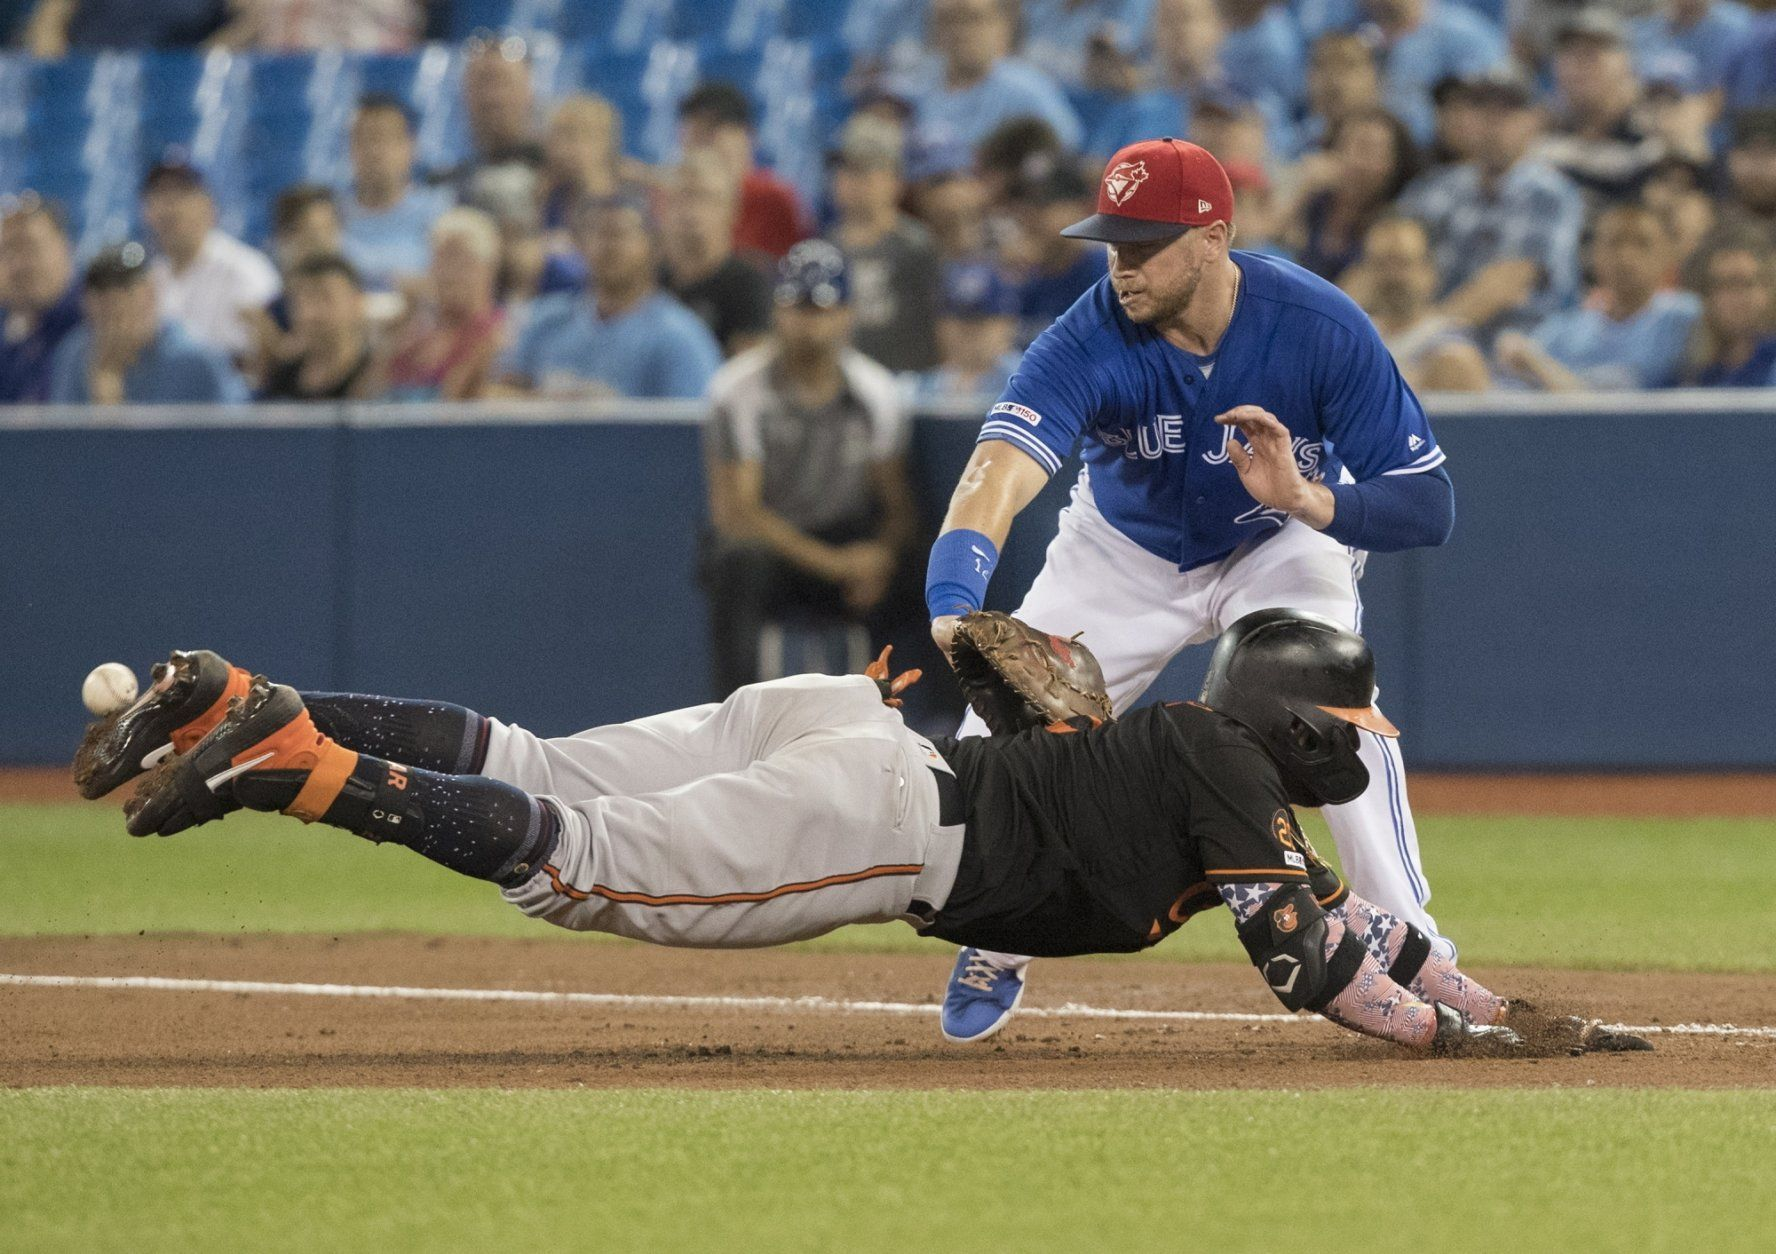 Baltimore Orioles' Jonathan Villar dives back to first but Toronto Blue Jays' Justin Smoak can not get a handle on a throw to him, allowing Villar to advance to second base during the fifth inning of a baseball game Friday, July 5, 2019, in Toronto. (Fred Thornhill/The Canadian Press via AP)